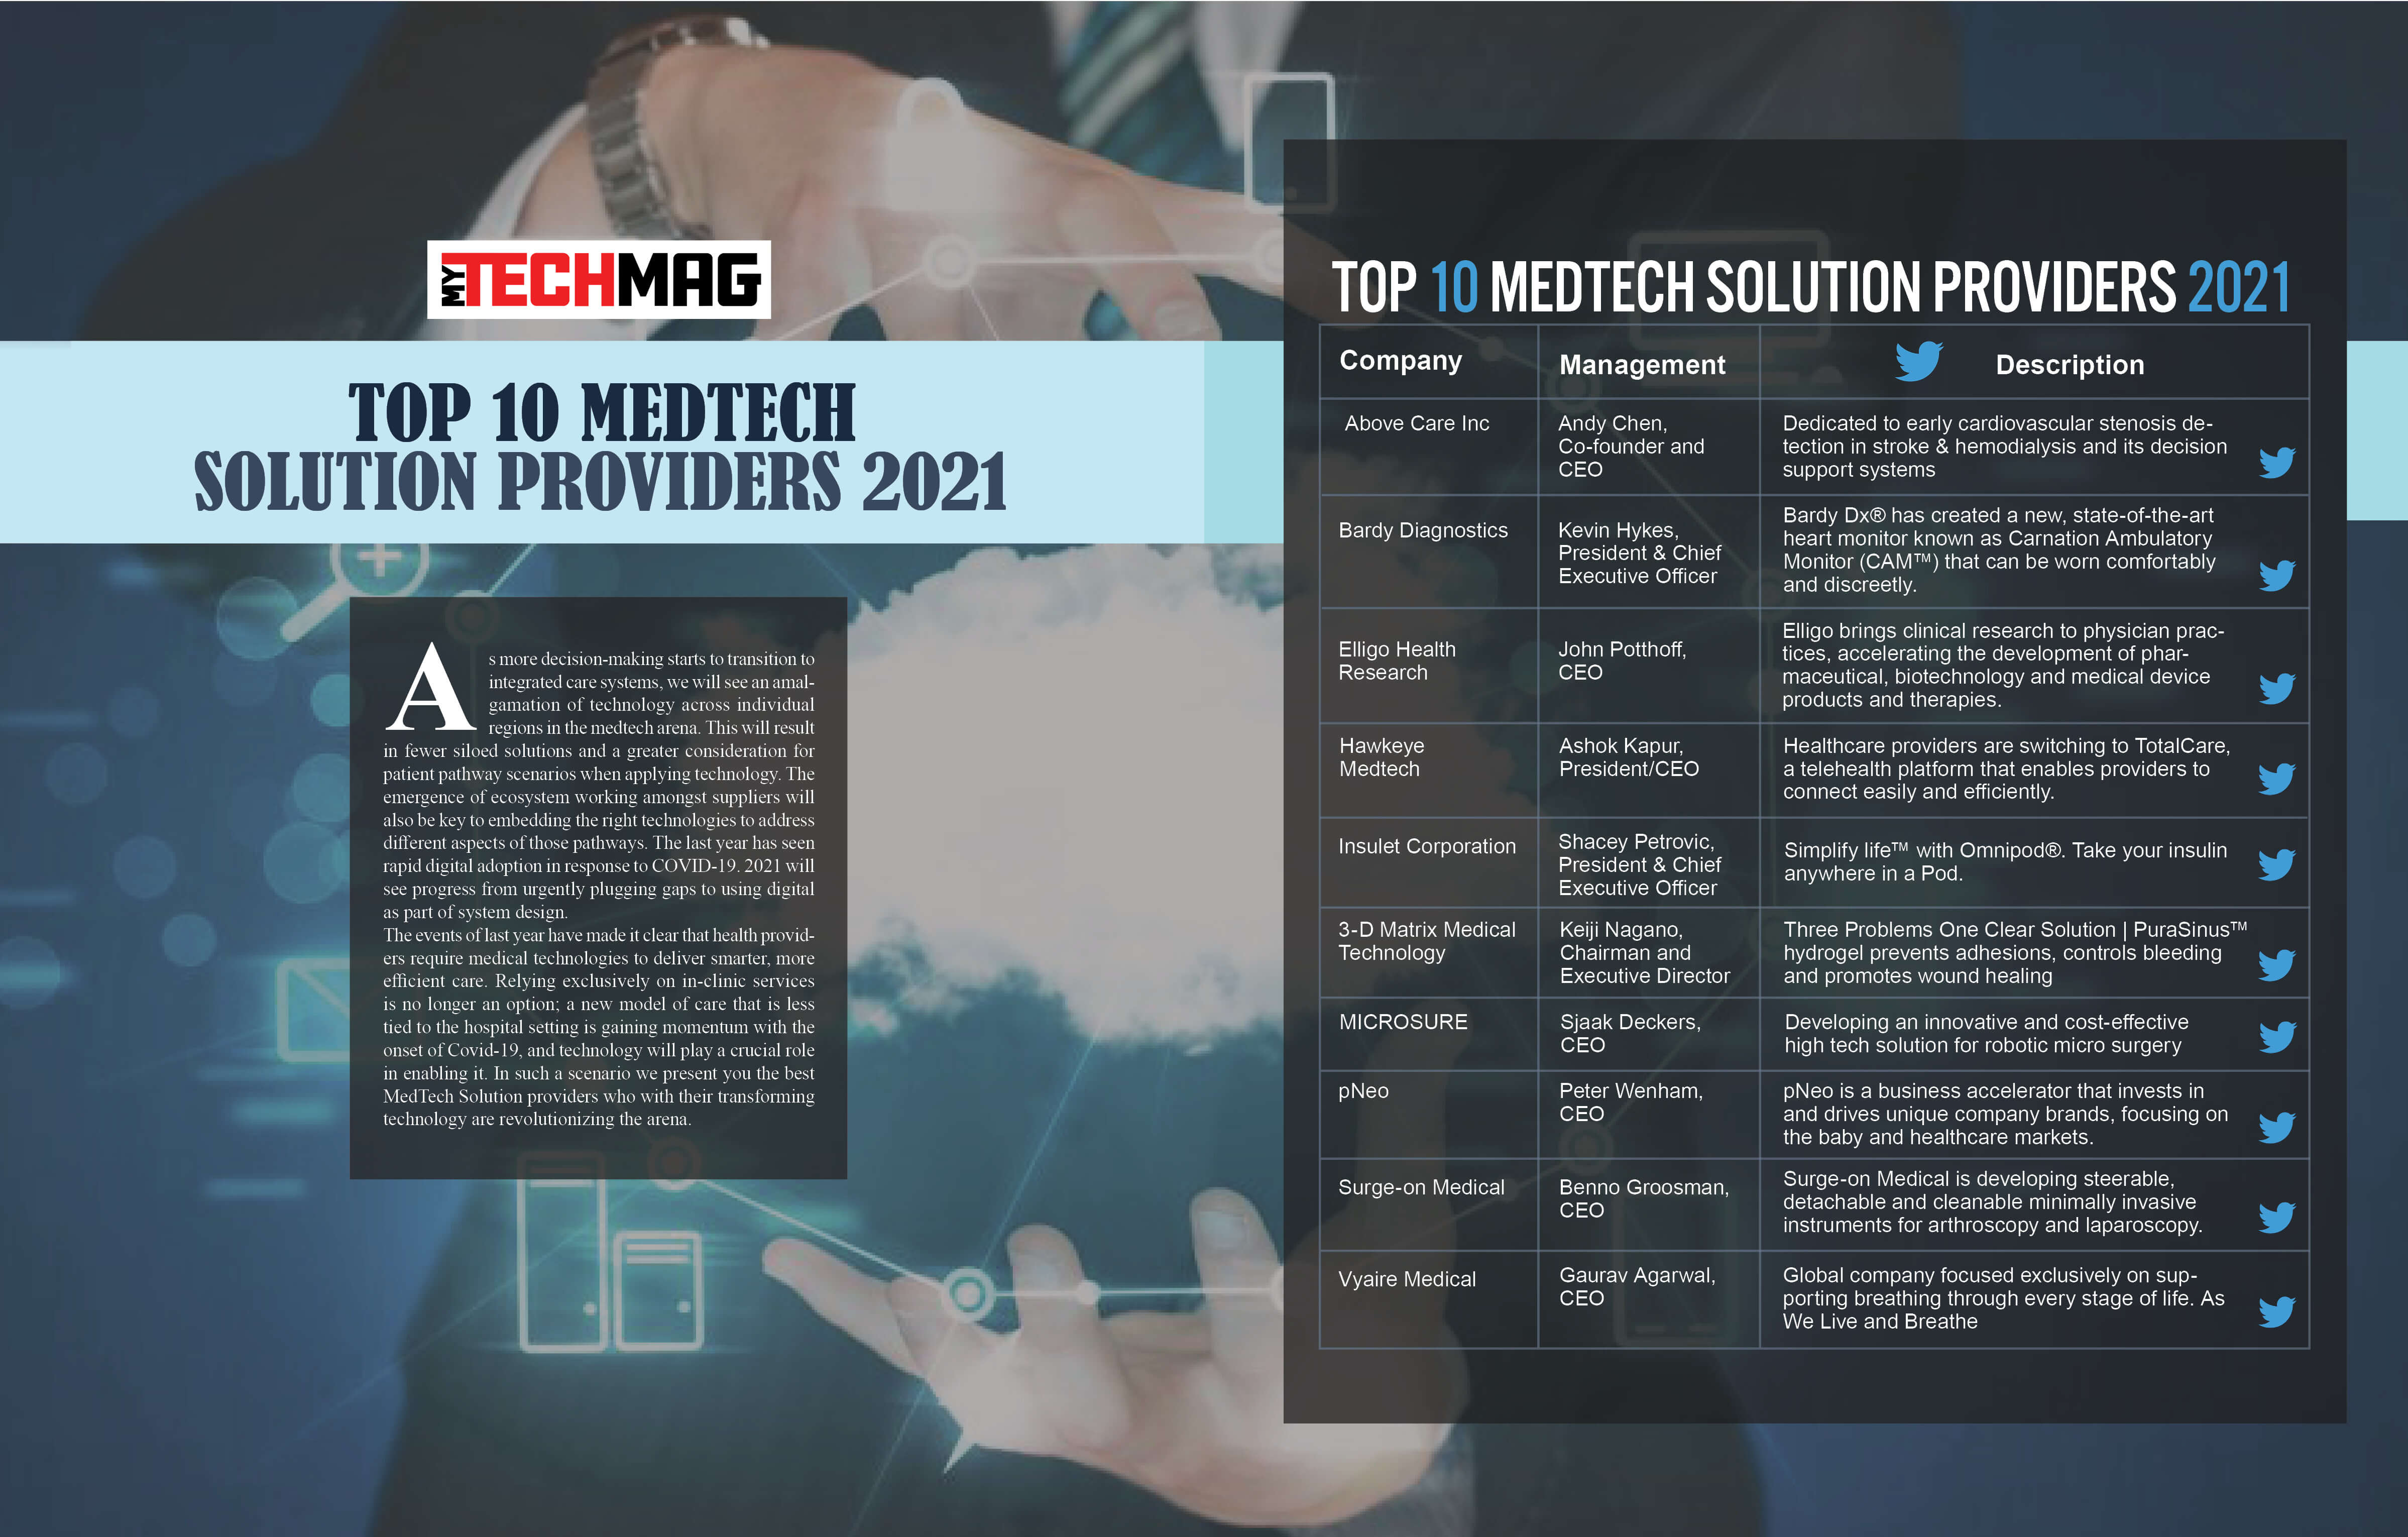 Top 10 MedTech Solution Providers 2021